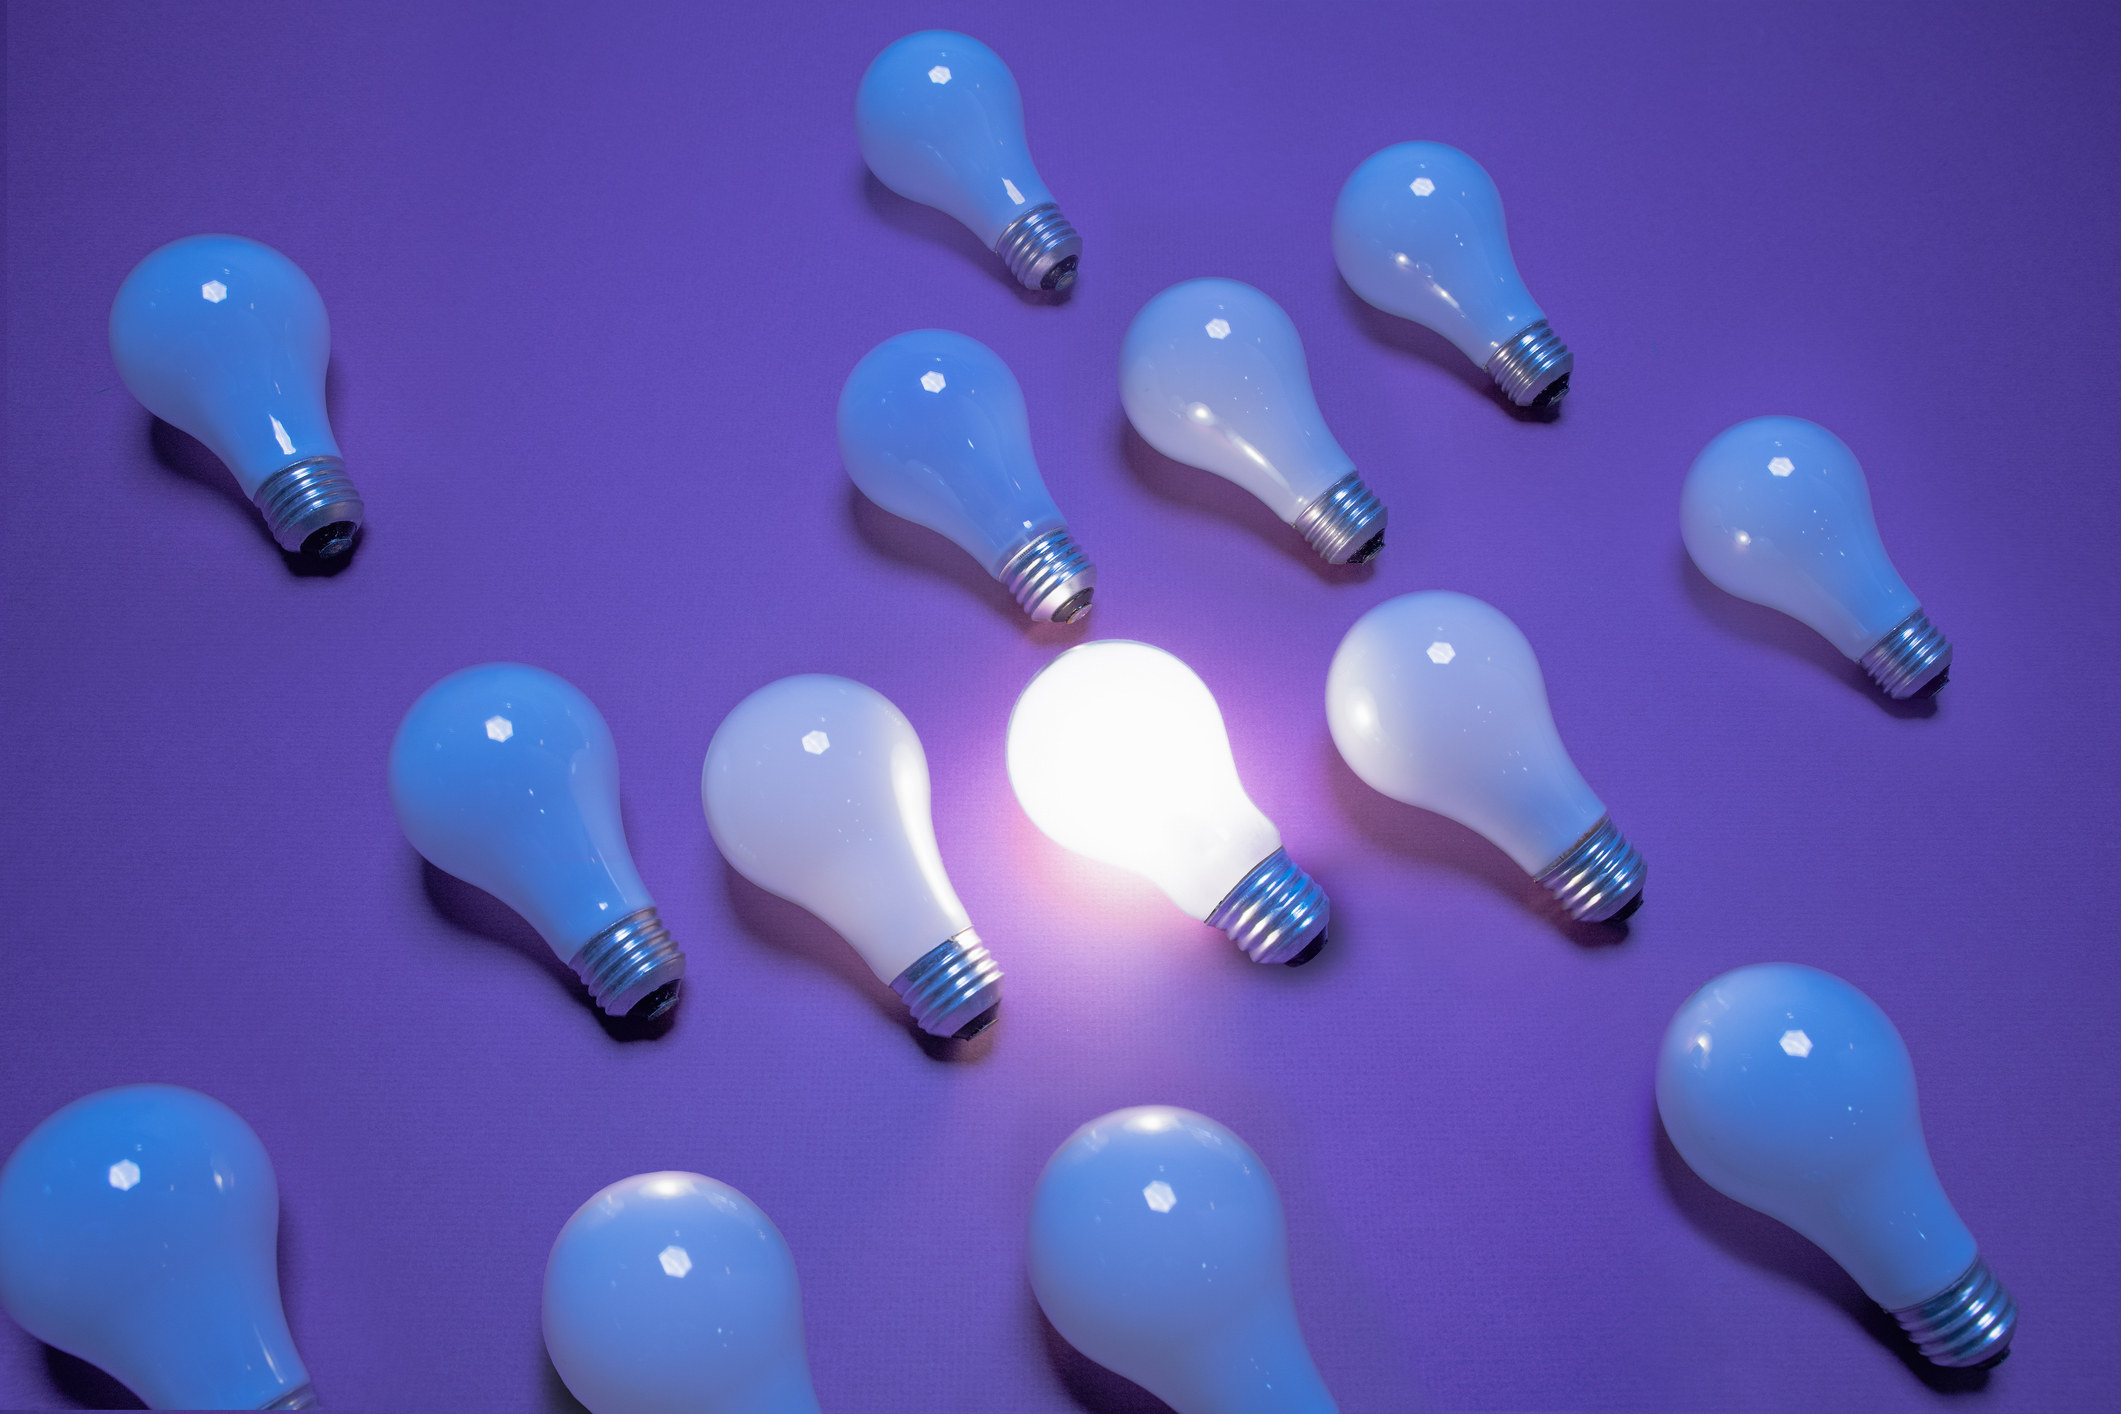 A group of lightbulbs laid out with one on and the others off